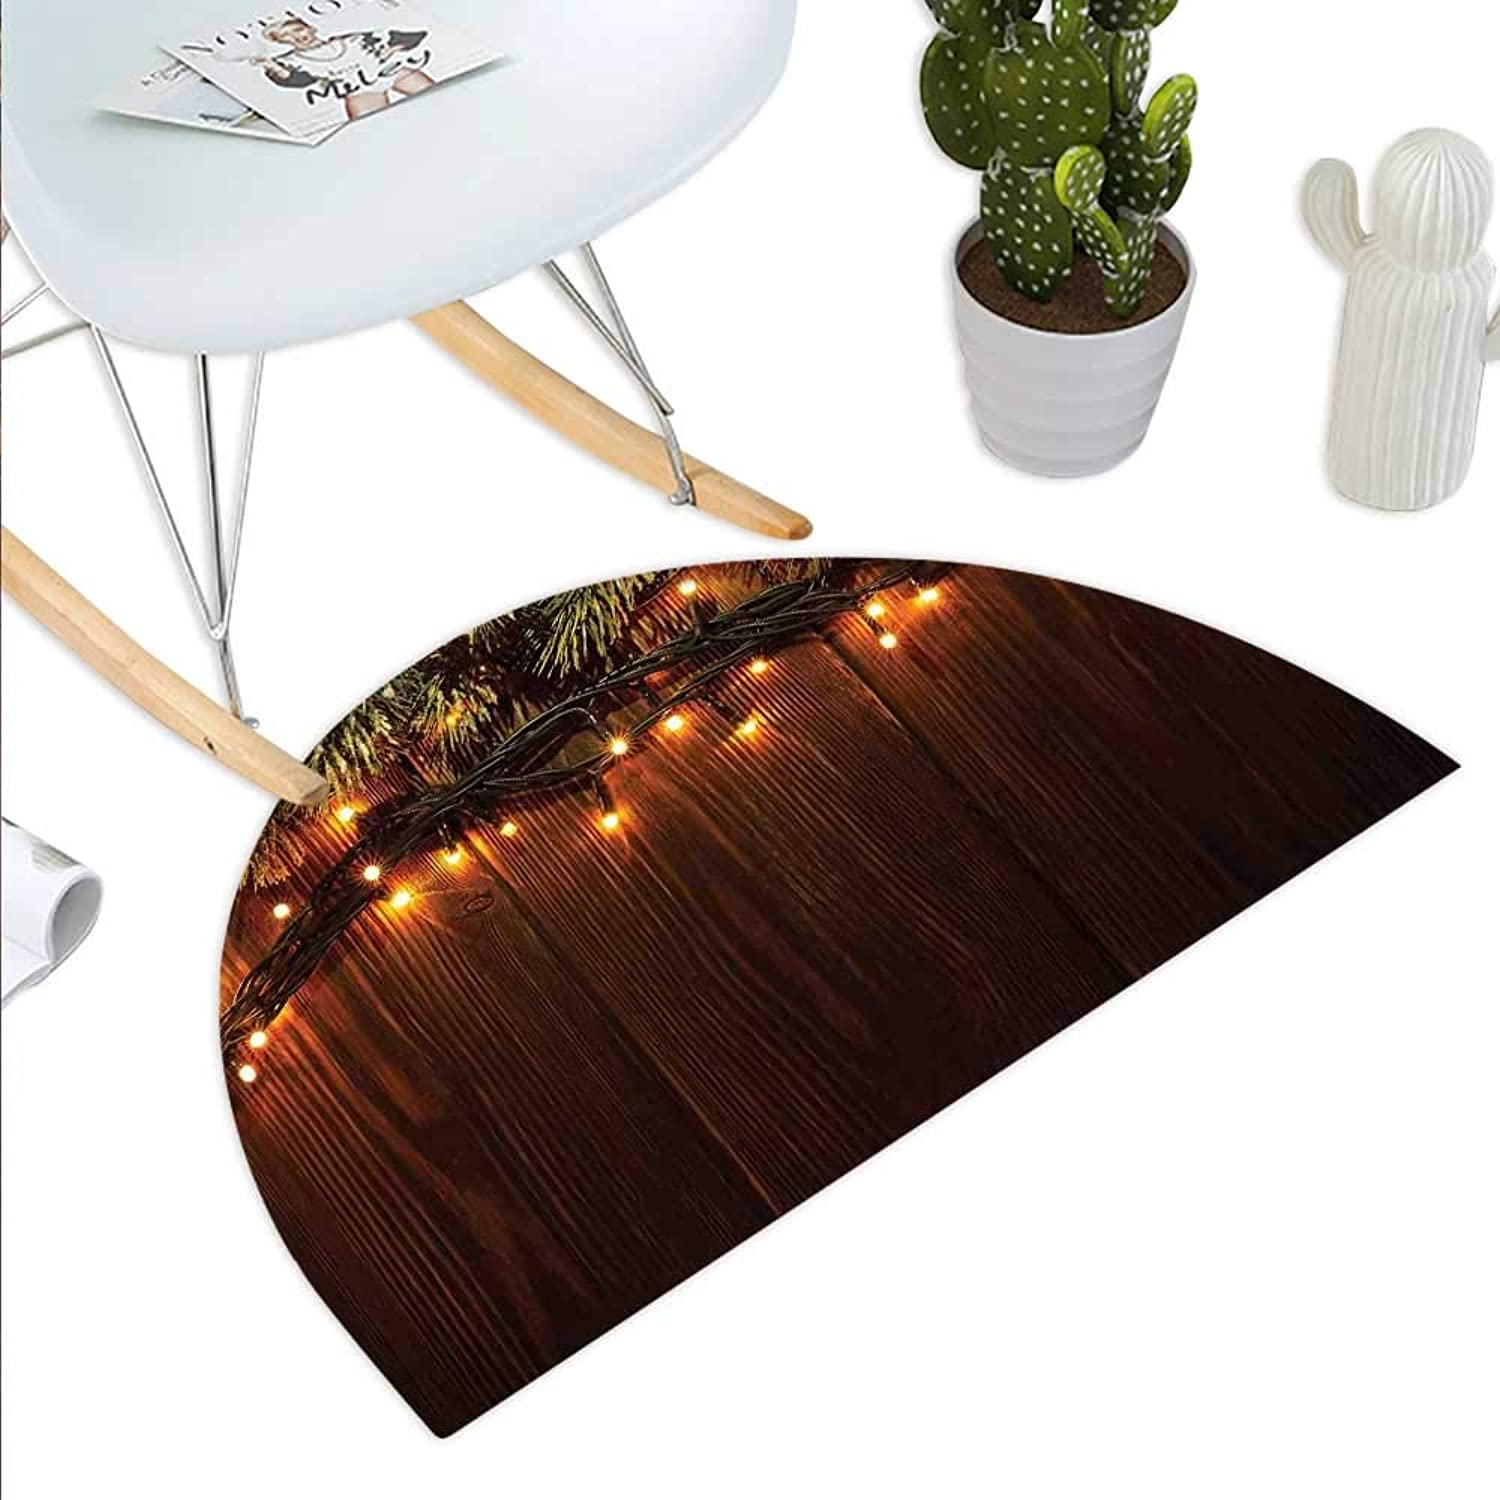 Christmas Semicircle Doormat Xmas Branch with Country Festivity Synergy Surprise Celebration Theme Print Halfmoon doormats H 23.6  xD 35.4  Brown Green